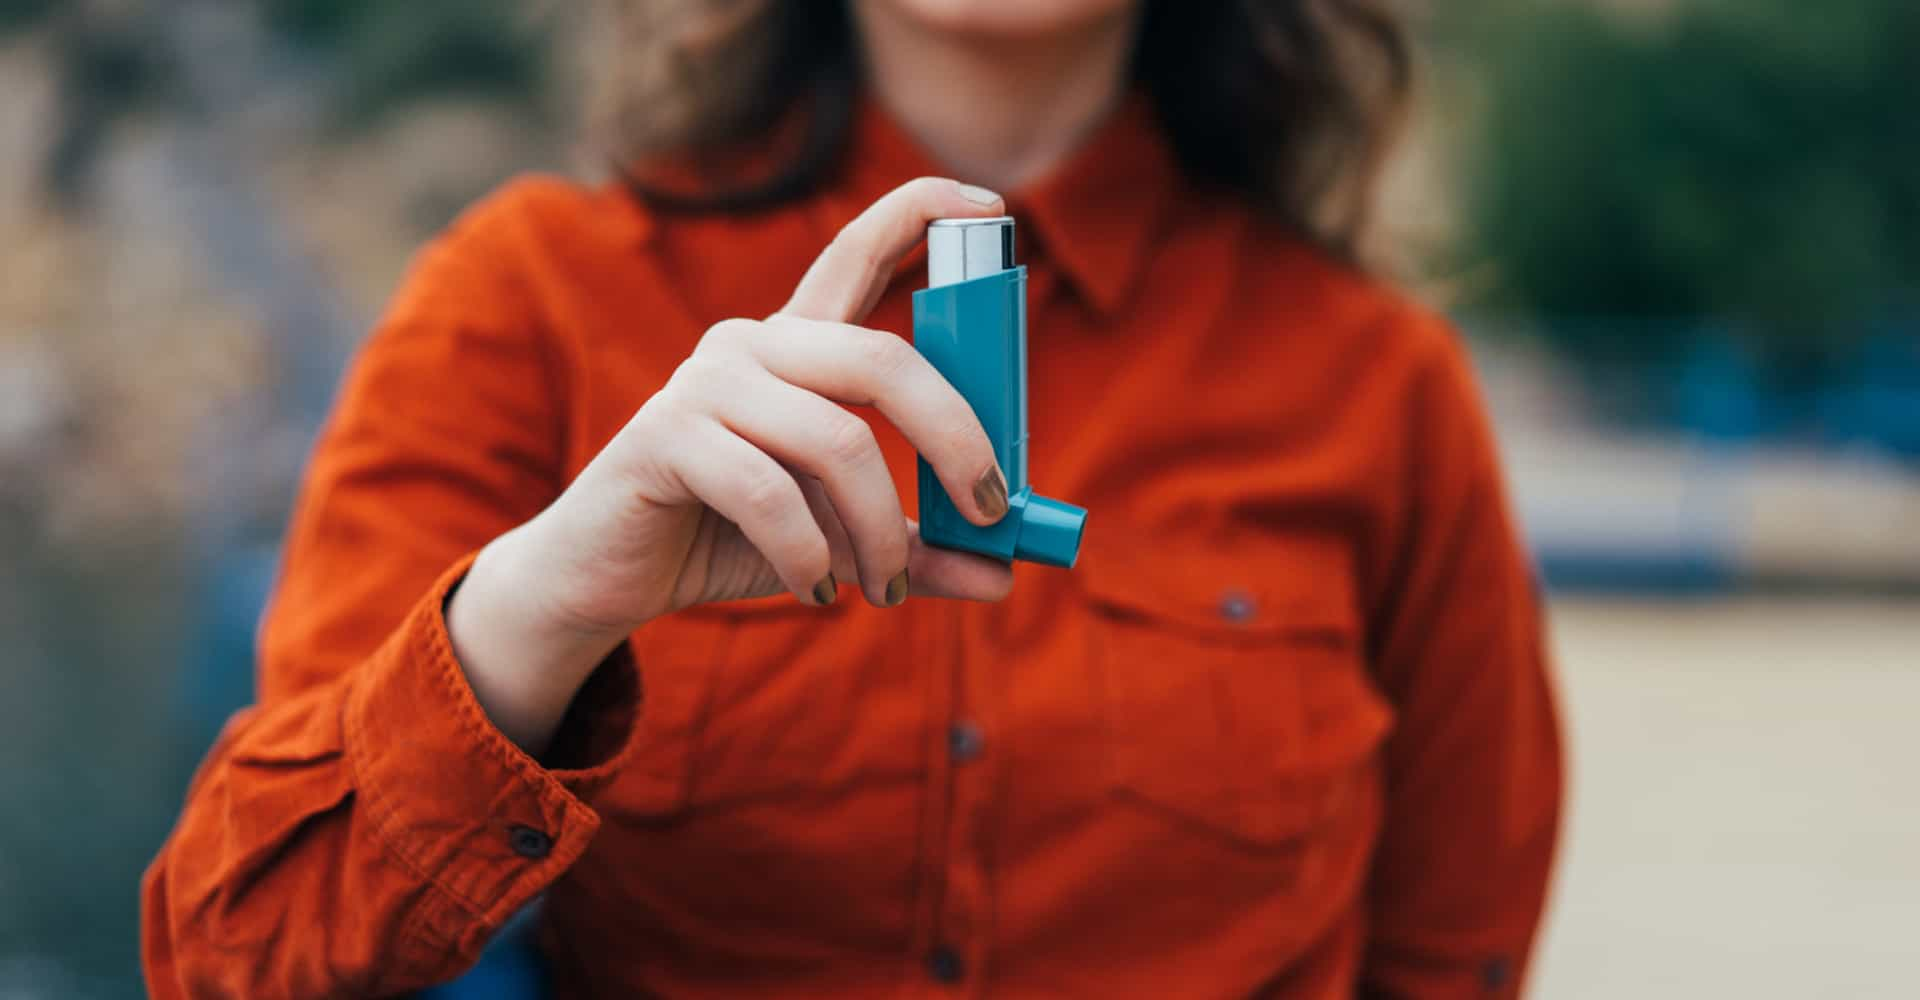 These weed inhalers look like asthma inhalers